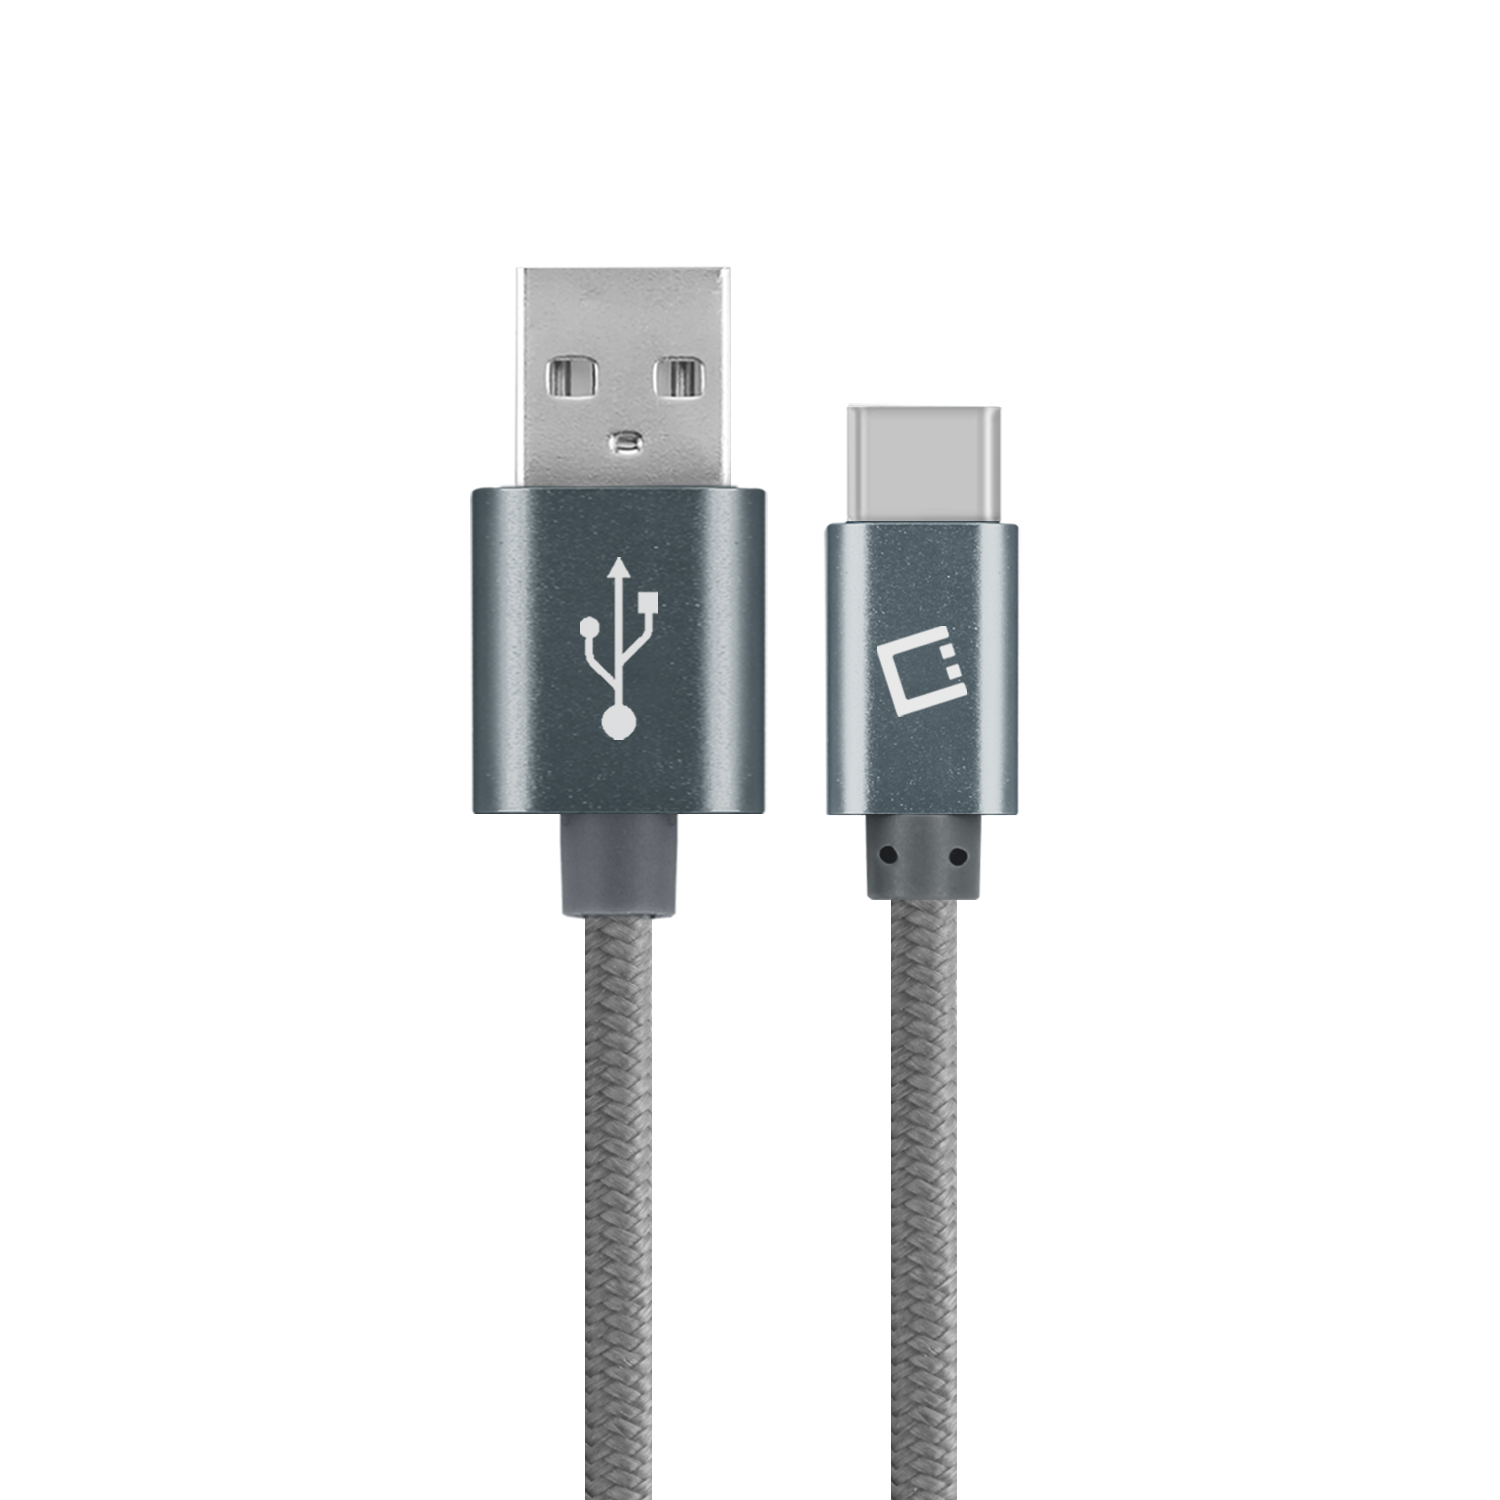 Google Pixel 2 XL USB Type-C To Type-A Braided Data Power Cable Grey 10ft Braided